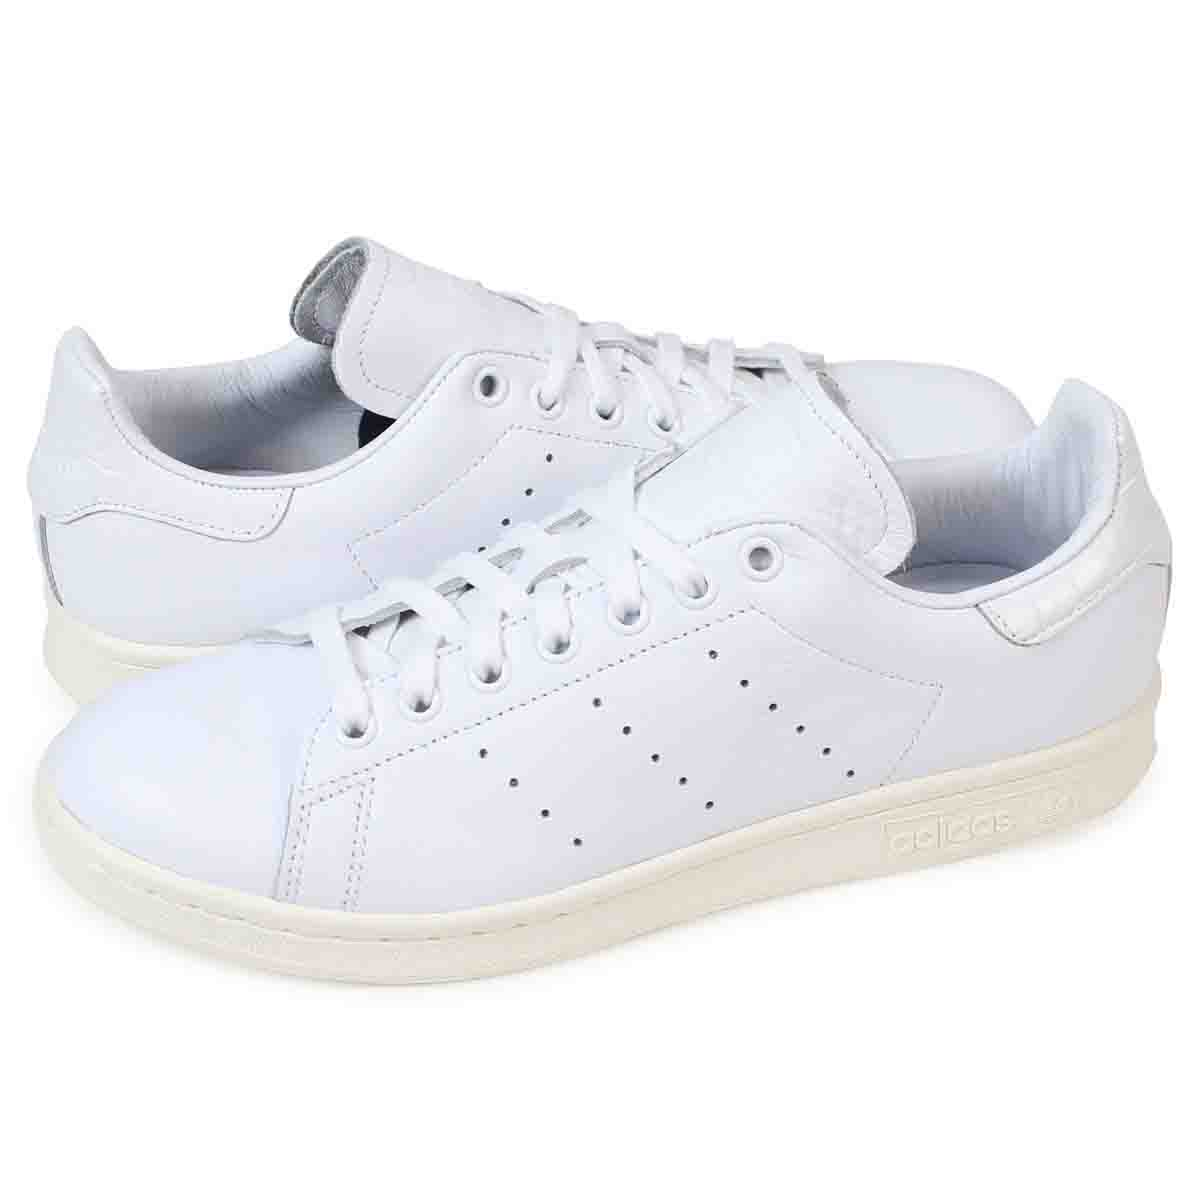 huge selection of d2ba0 bb8f1 adidas originals STAN SMITH originals Stan Smith Adidas Lady s men sneakers  BZ0466 shoes white  load planned Shinnyu load in reservation product 12 7  ...